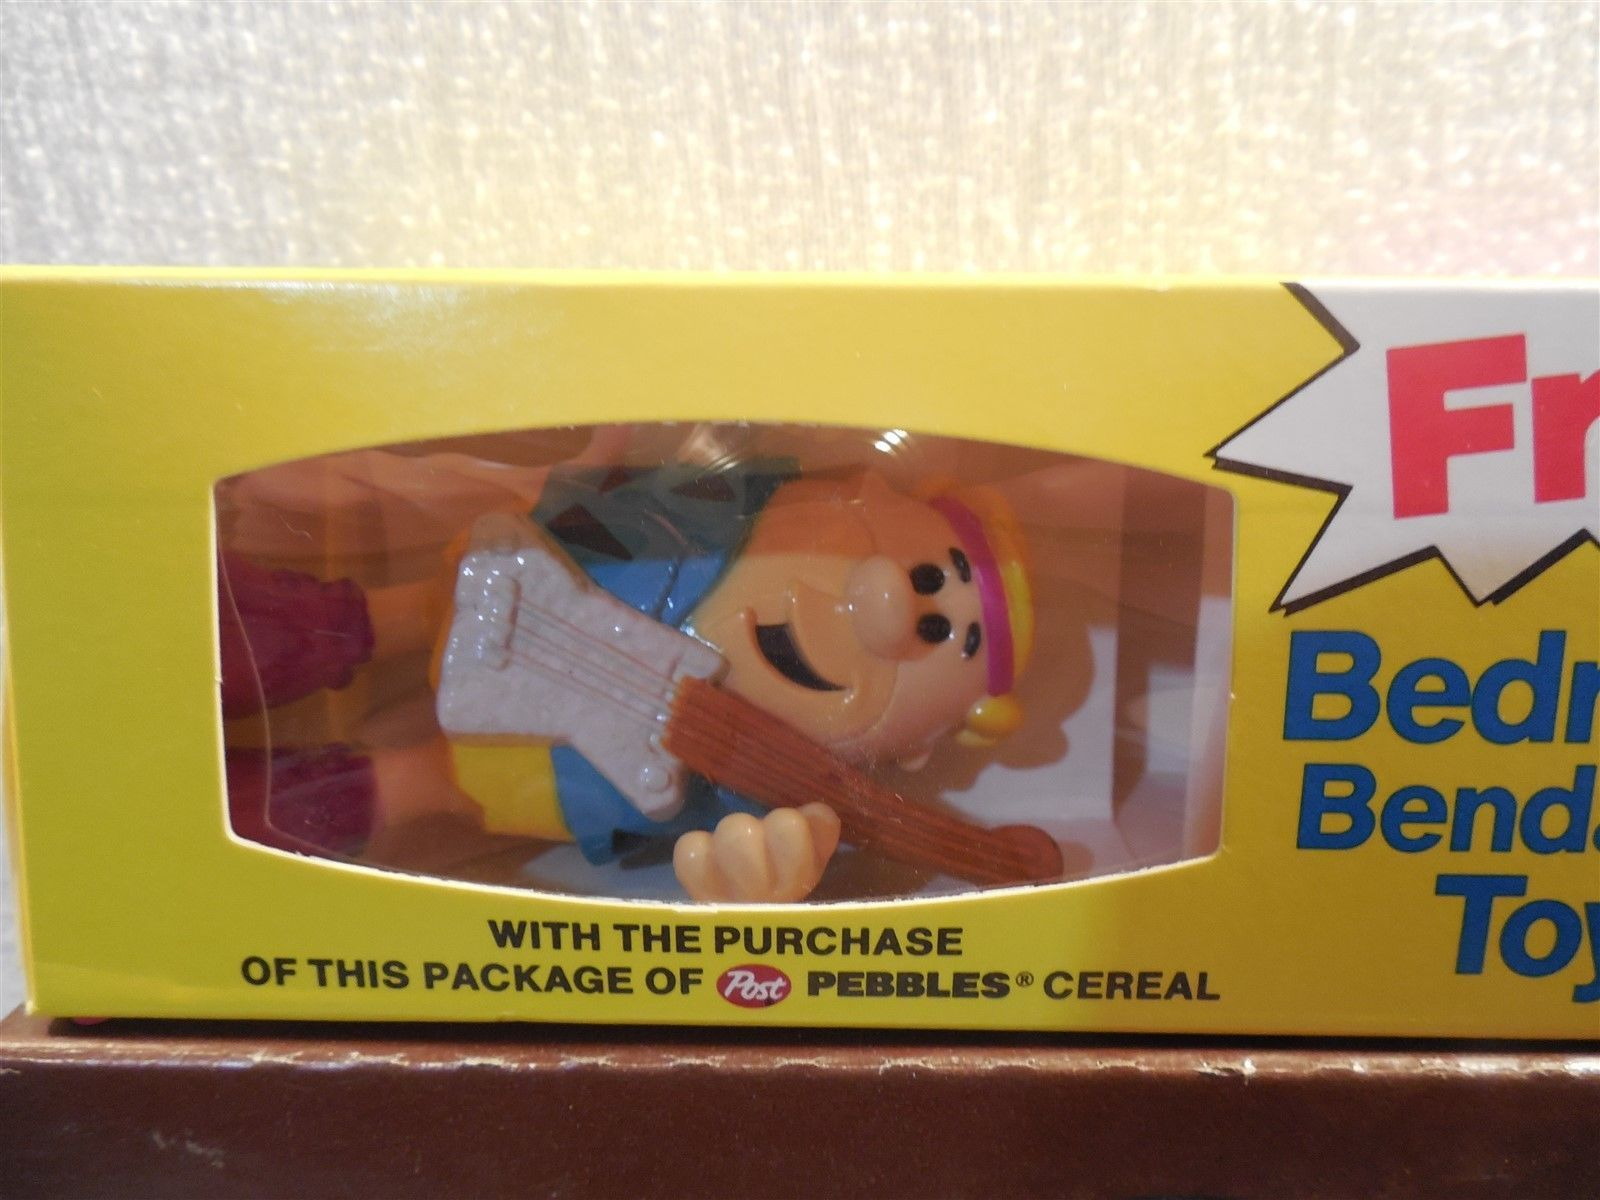 Flintstones 1991 Post Cocoa Pebbles Cereal Box Bedrock Bendable Band Toy Barney